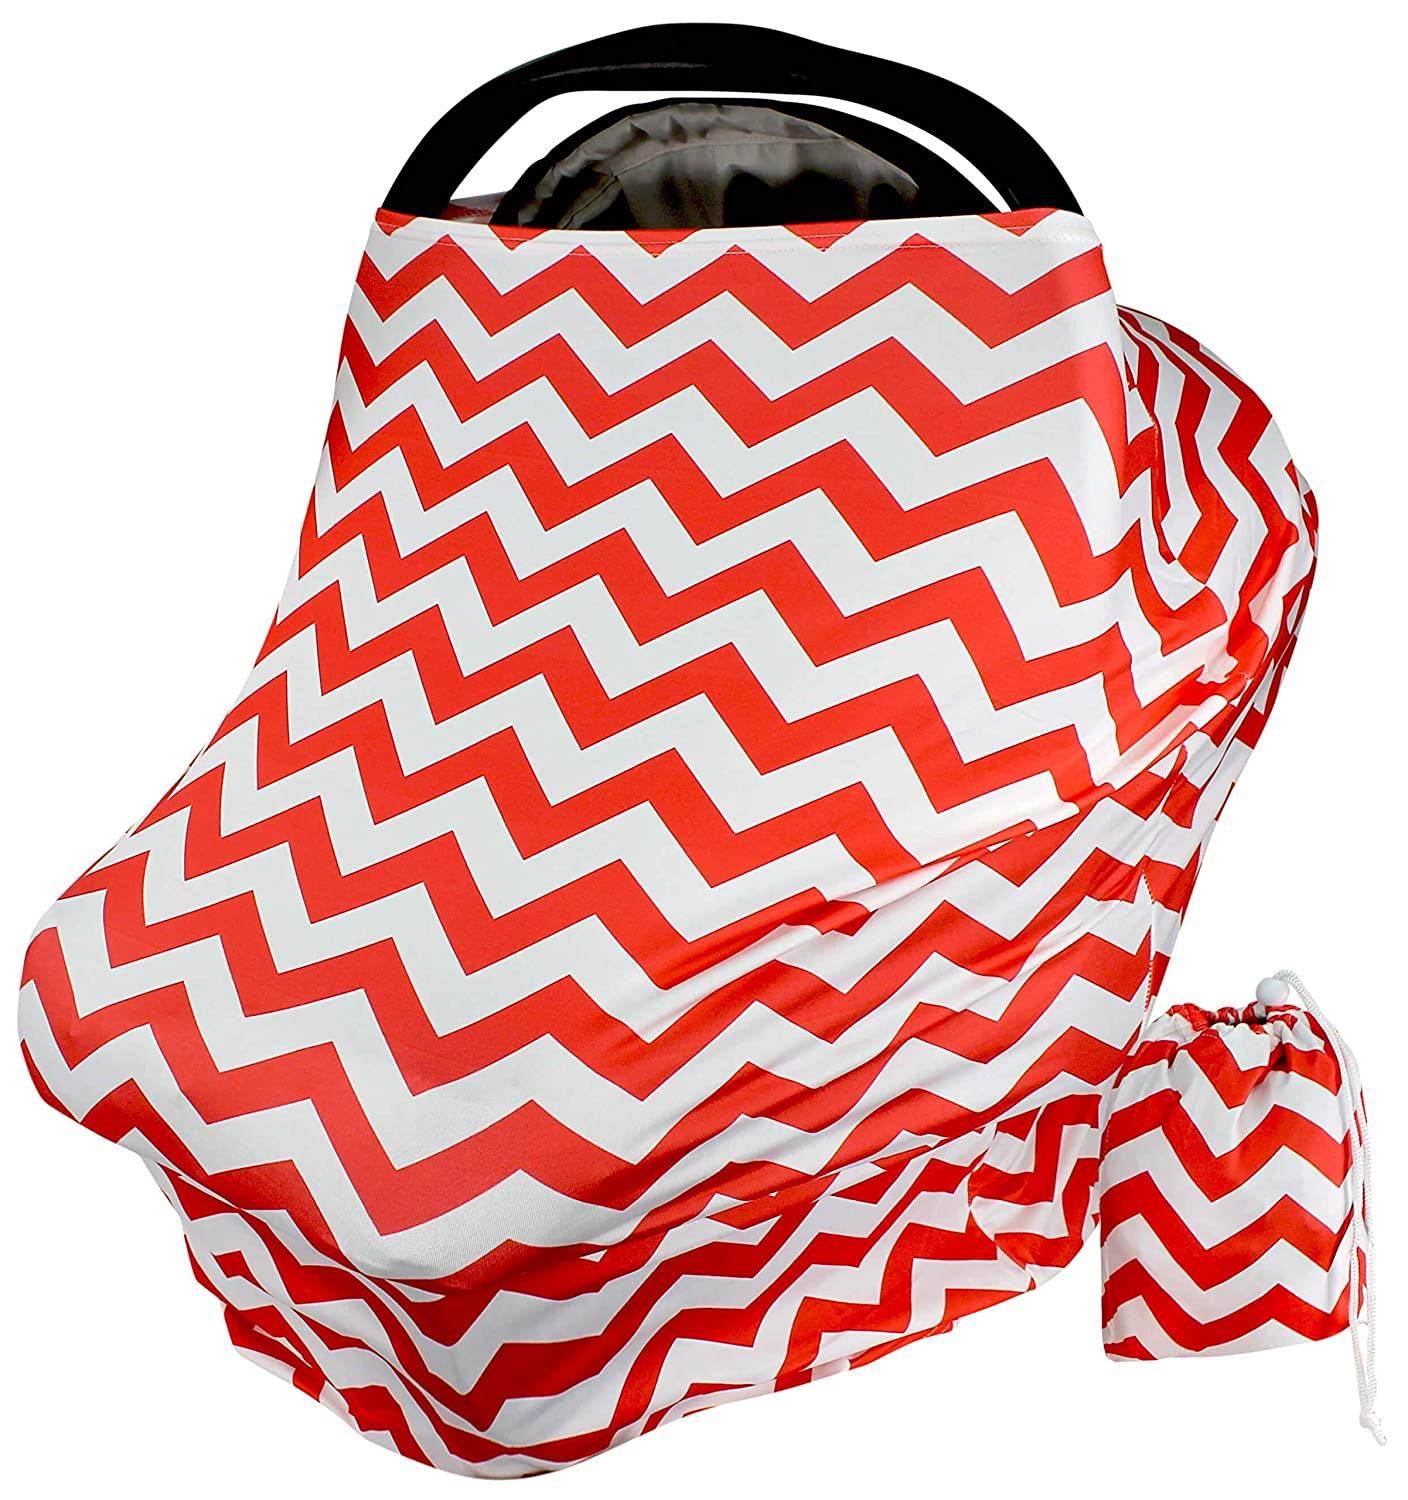 Car Seat Covers for Babies - Red Zig Zag